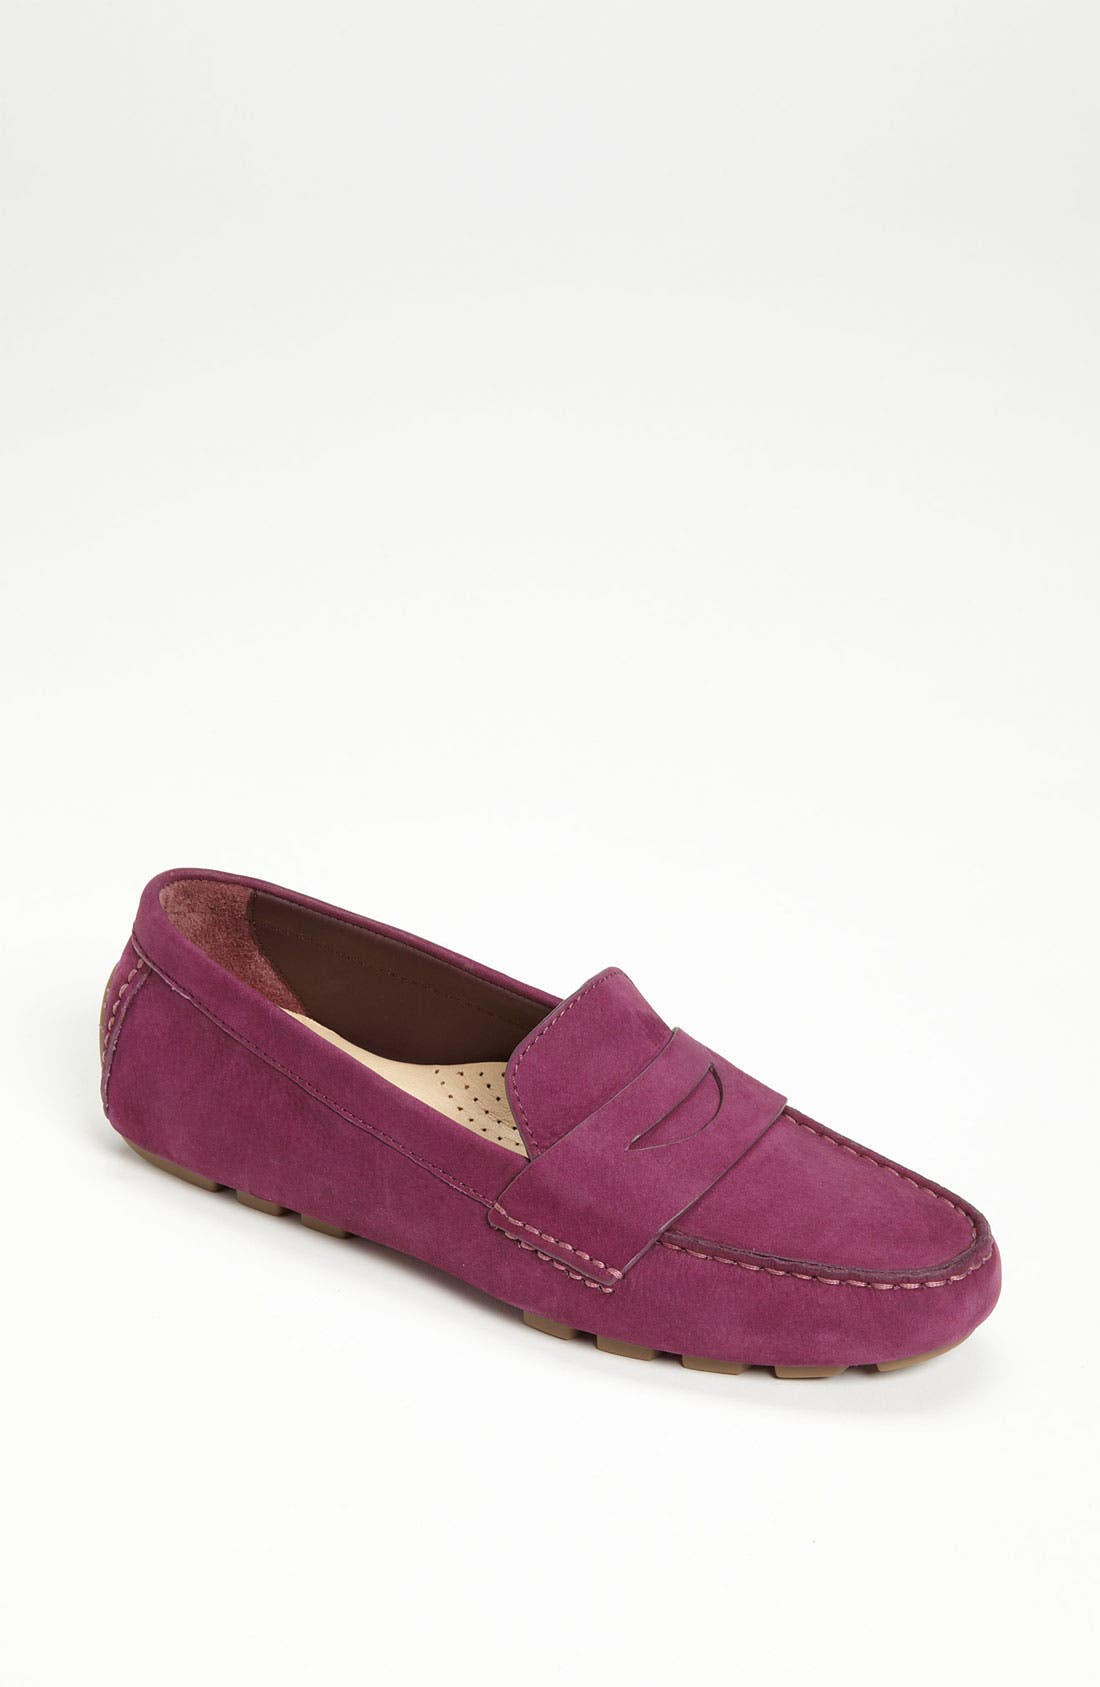 Alternate Image 1 Selected - Cole Haan 'Air Sadie' Driving Moccasin (Nordstrom Exclusive)